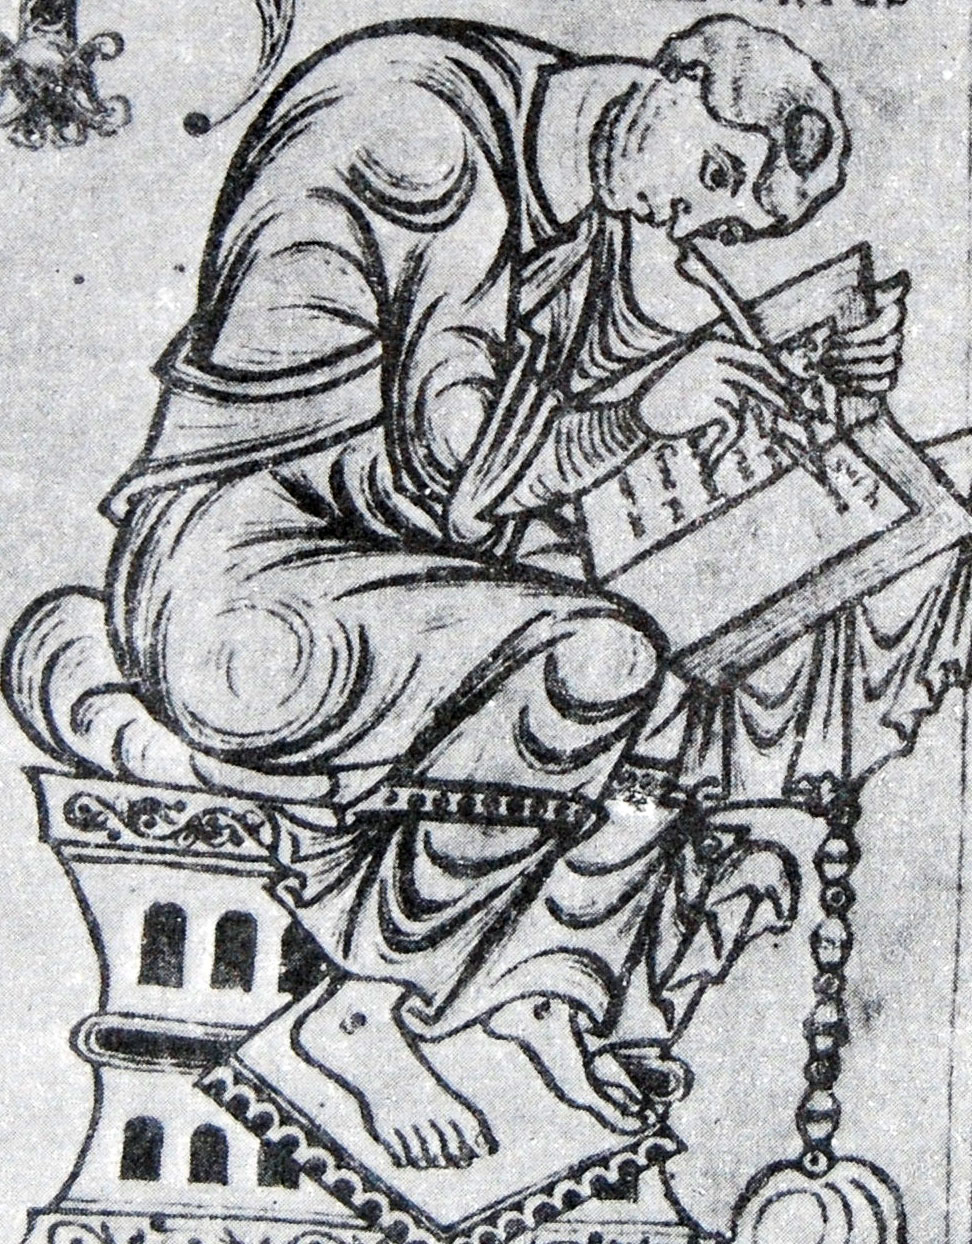 Paulus Orosius, shown in a miniature from the Saint-Epure codex.